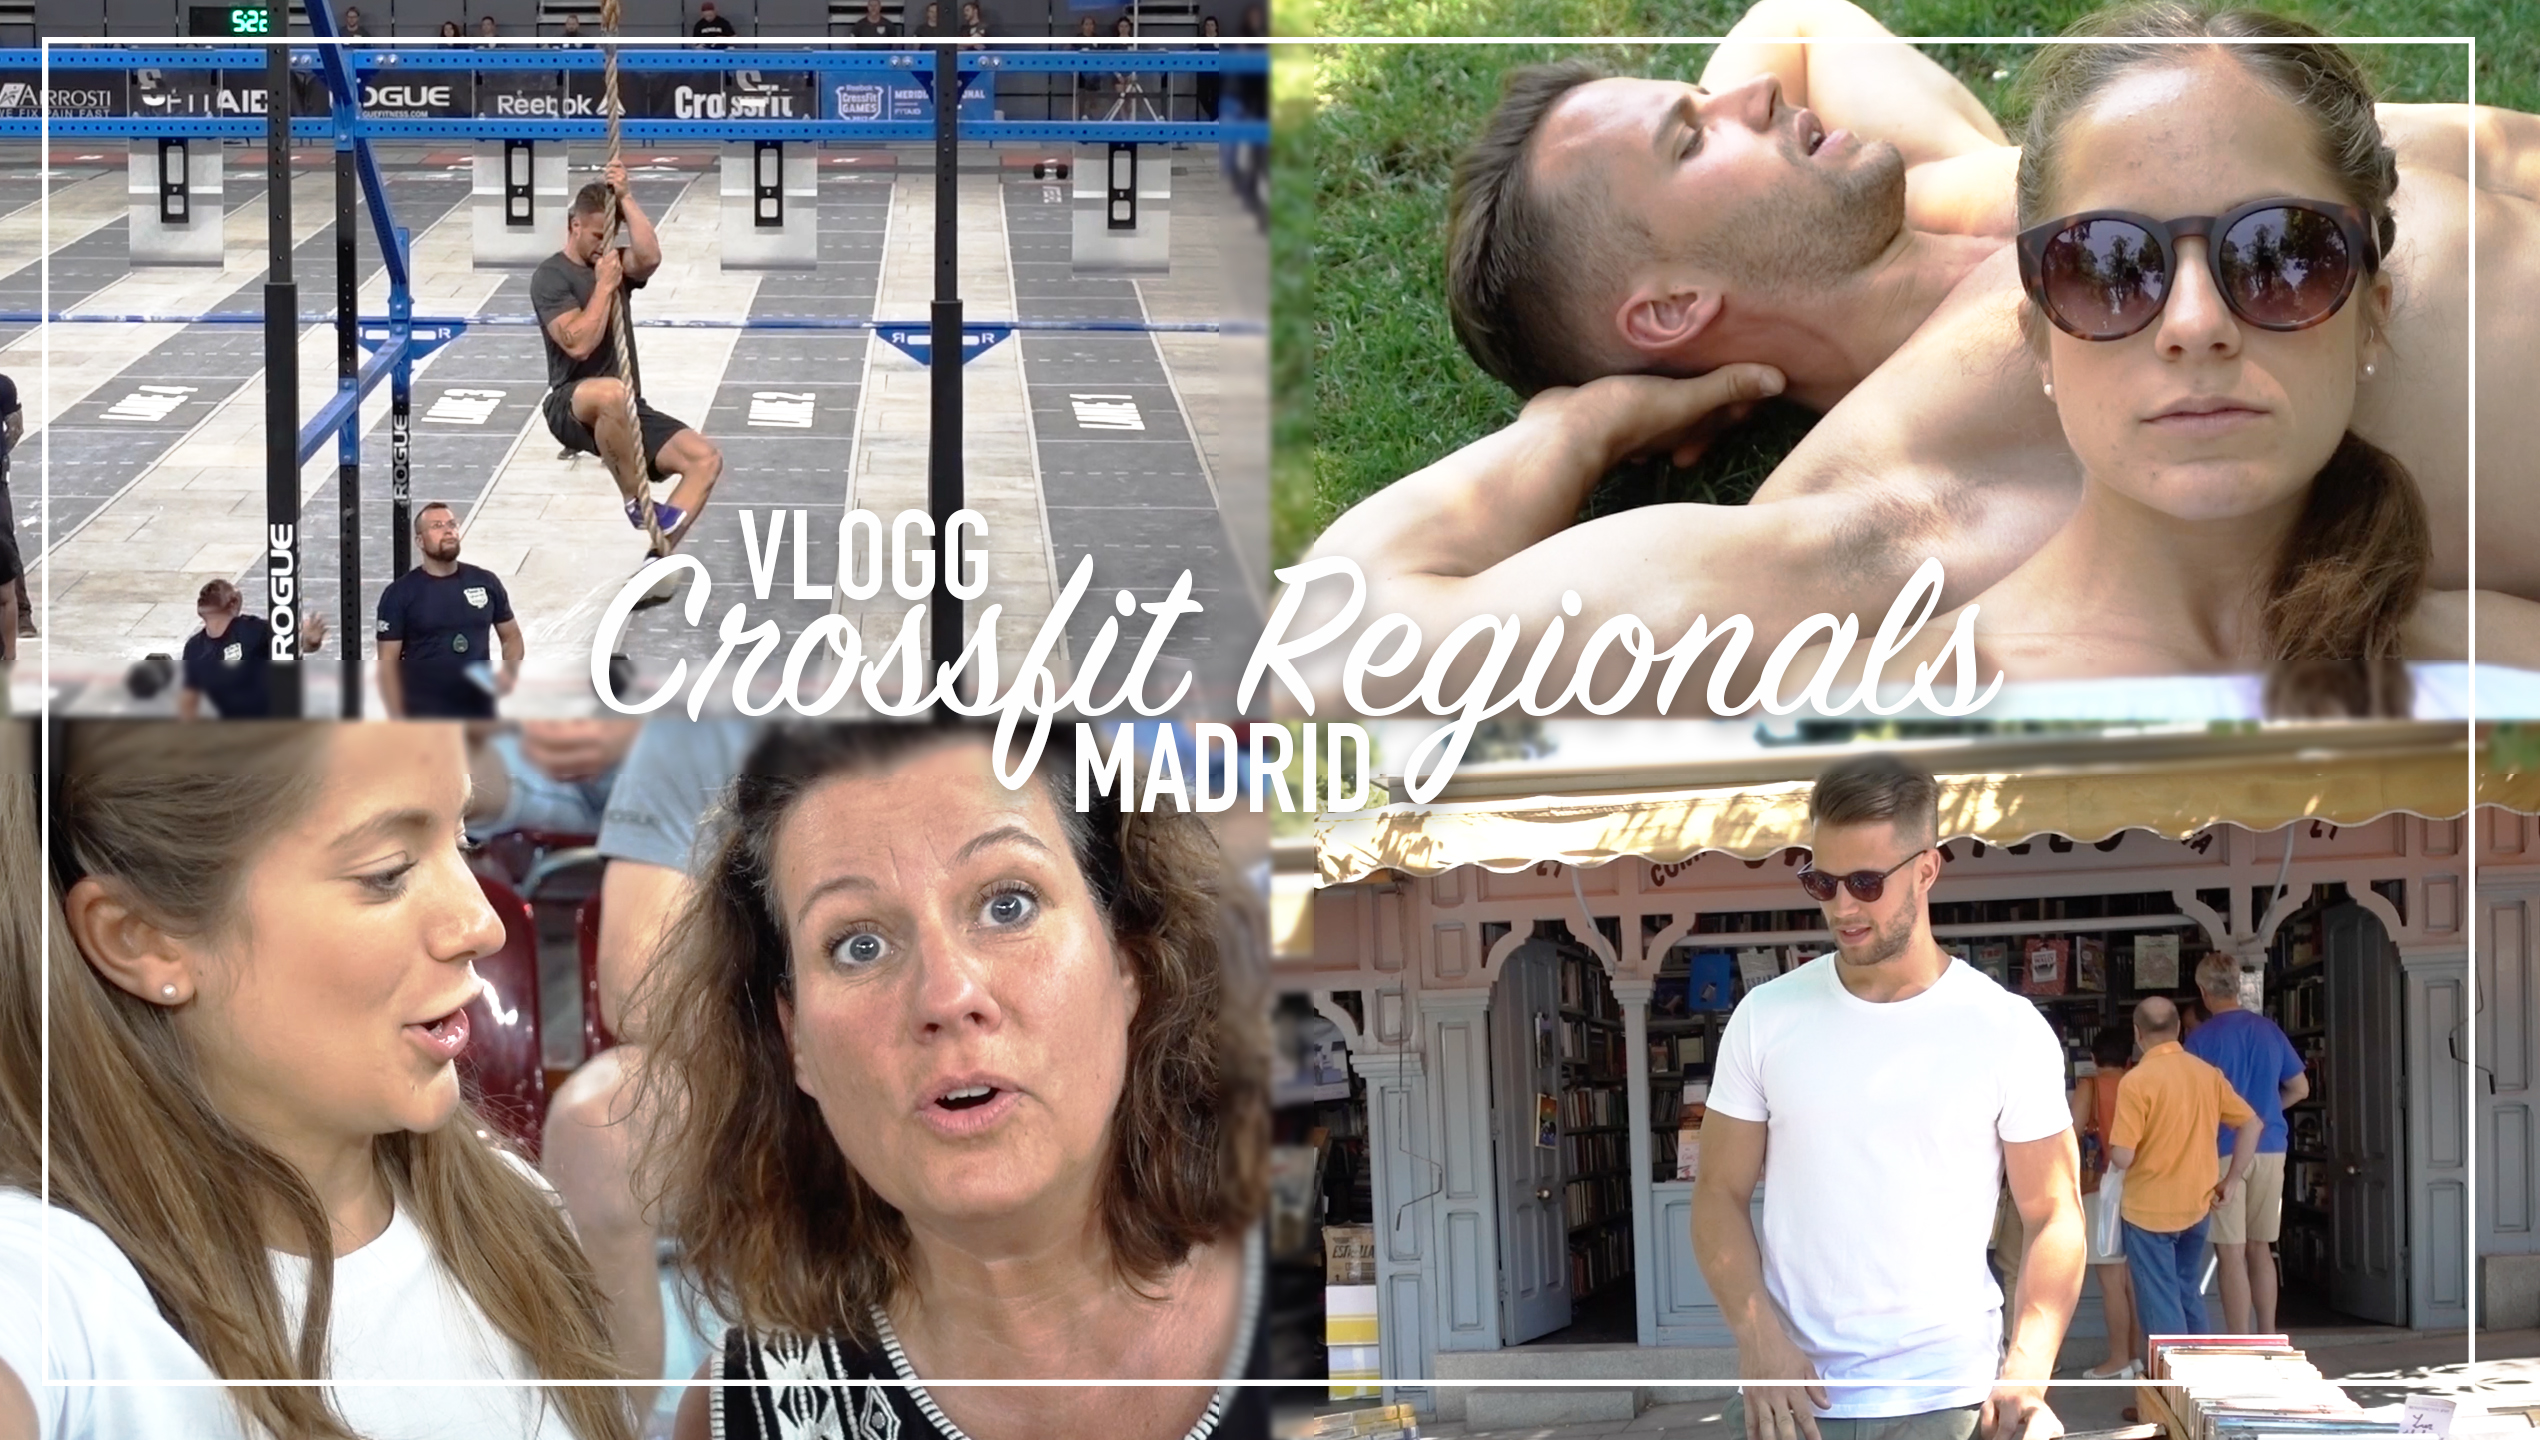 isabel-boltenstern-crossfit-regionals-madrid-vlogg